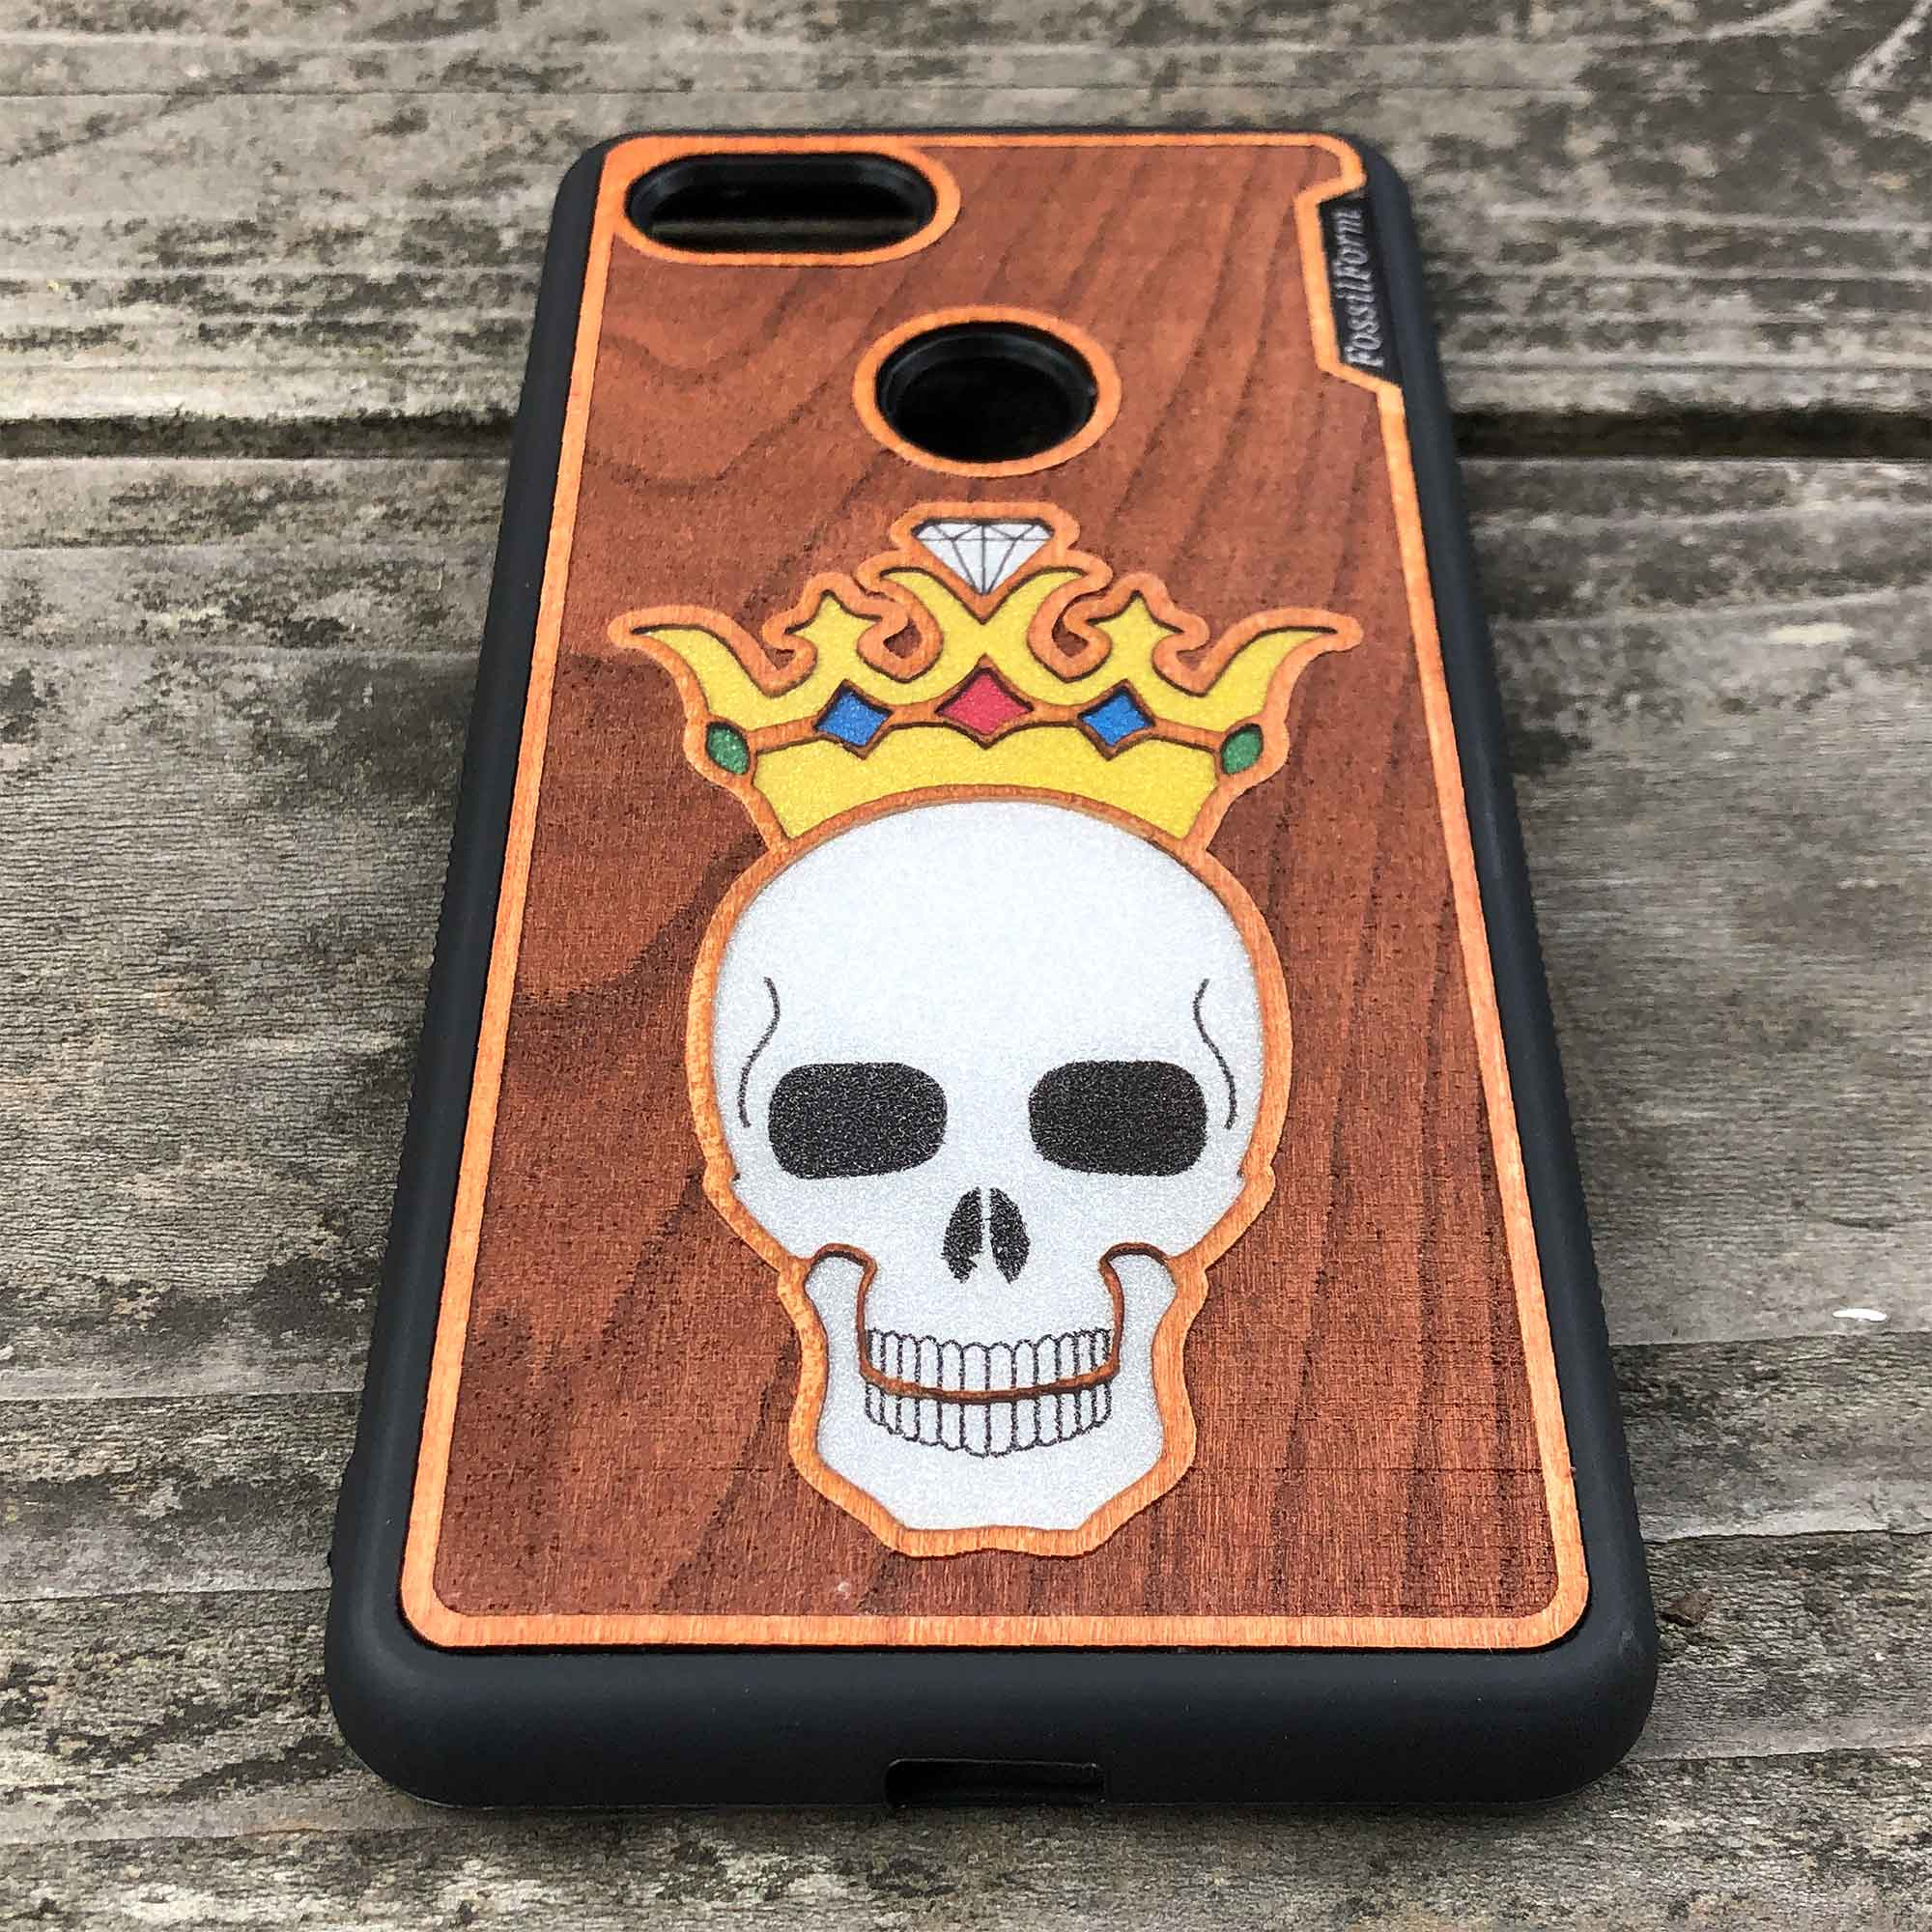 Forever King - Engraved Wood & Resin Case - Black